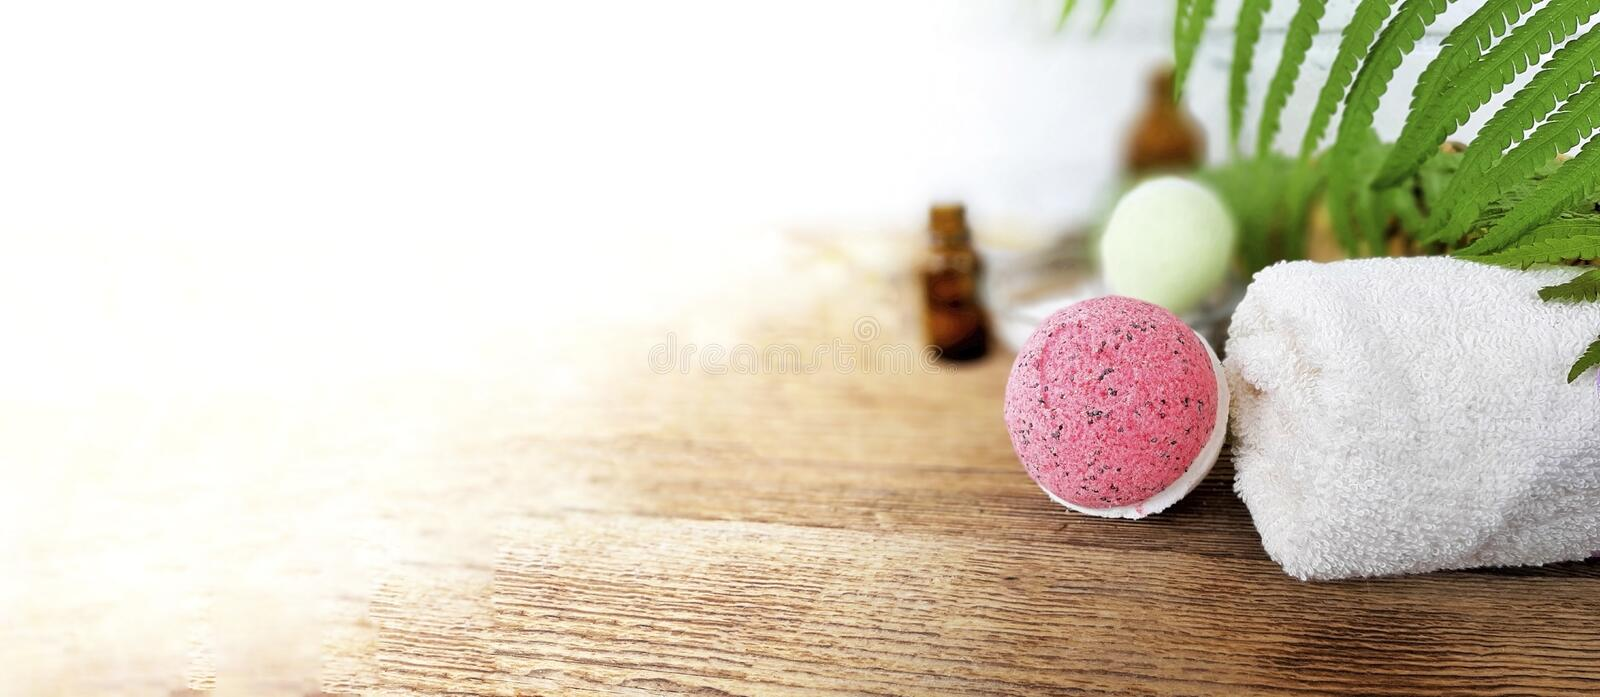 Pink bath bomb with towel  on wooden background. Summer spa aromatherapy concept for vacation and relax.  Banner with copy space, care, body, beauty, treatment royalty free stock photography